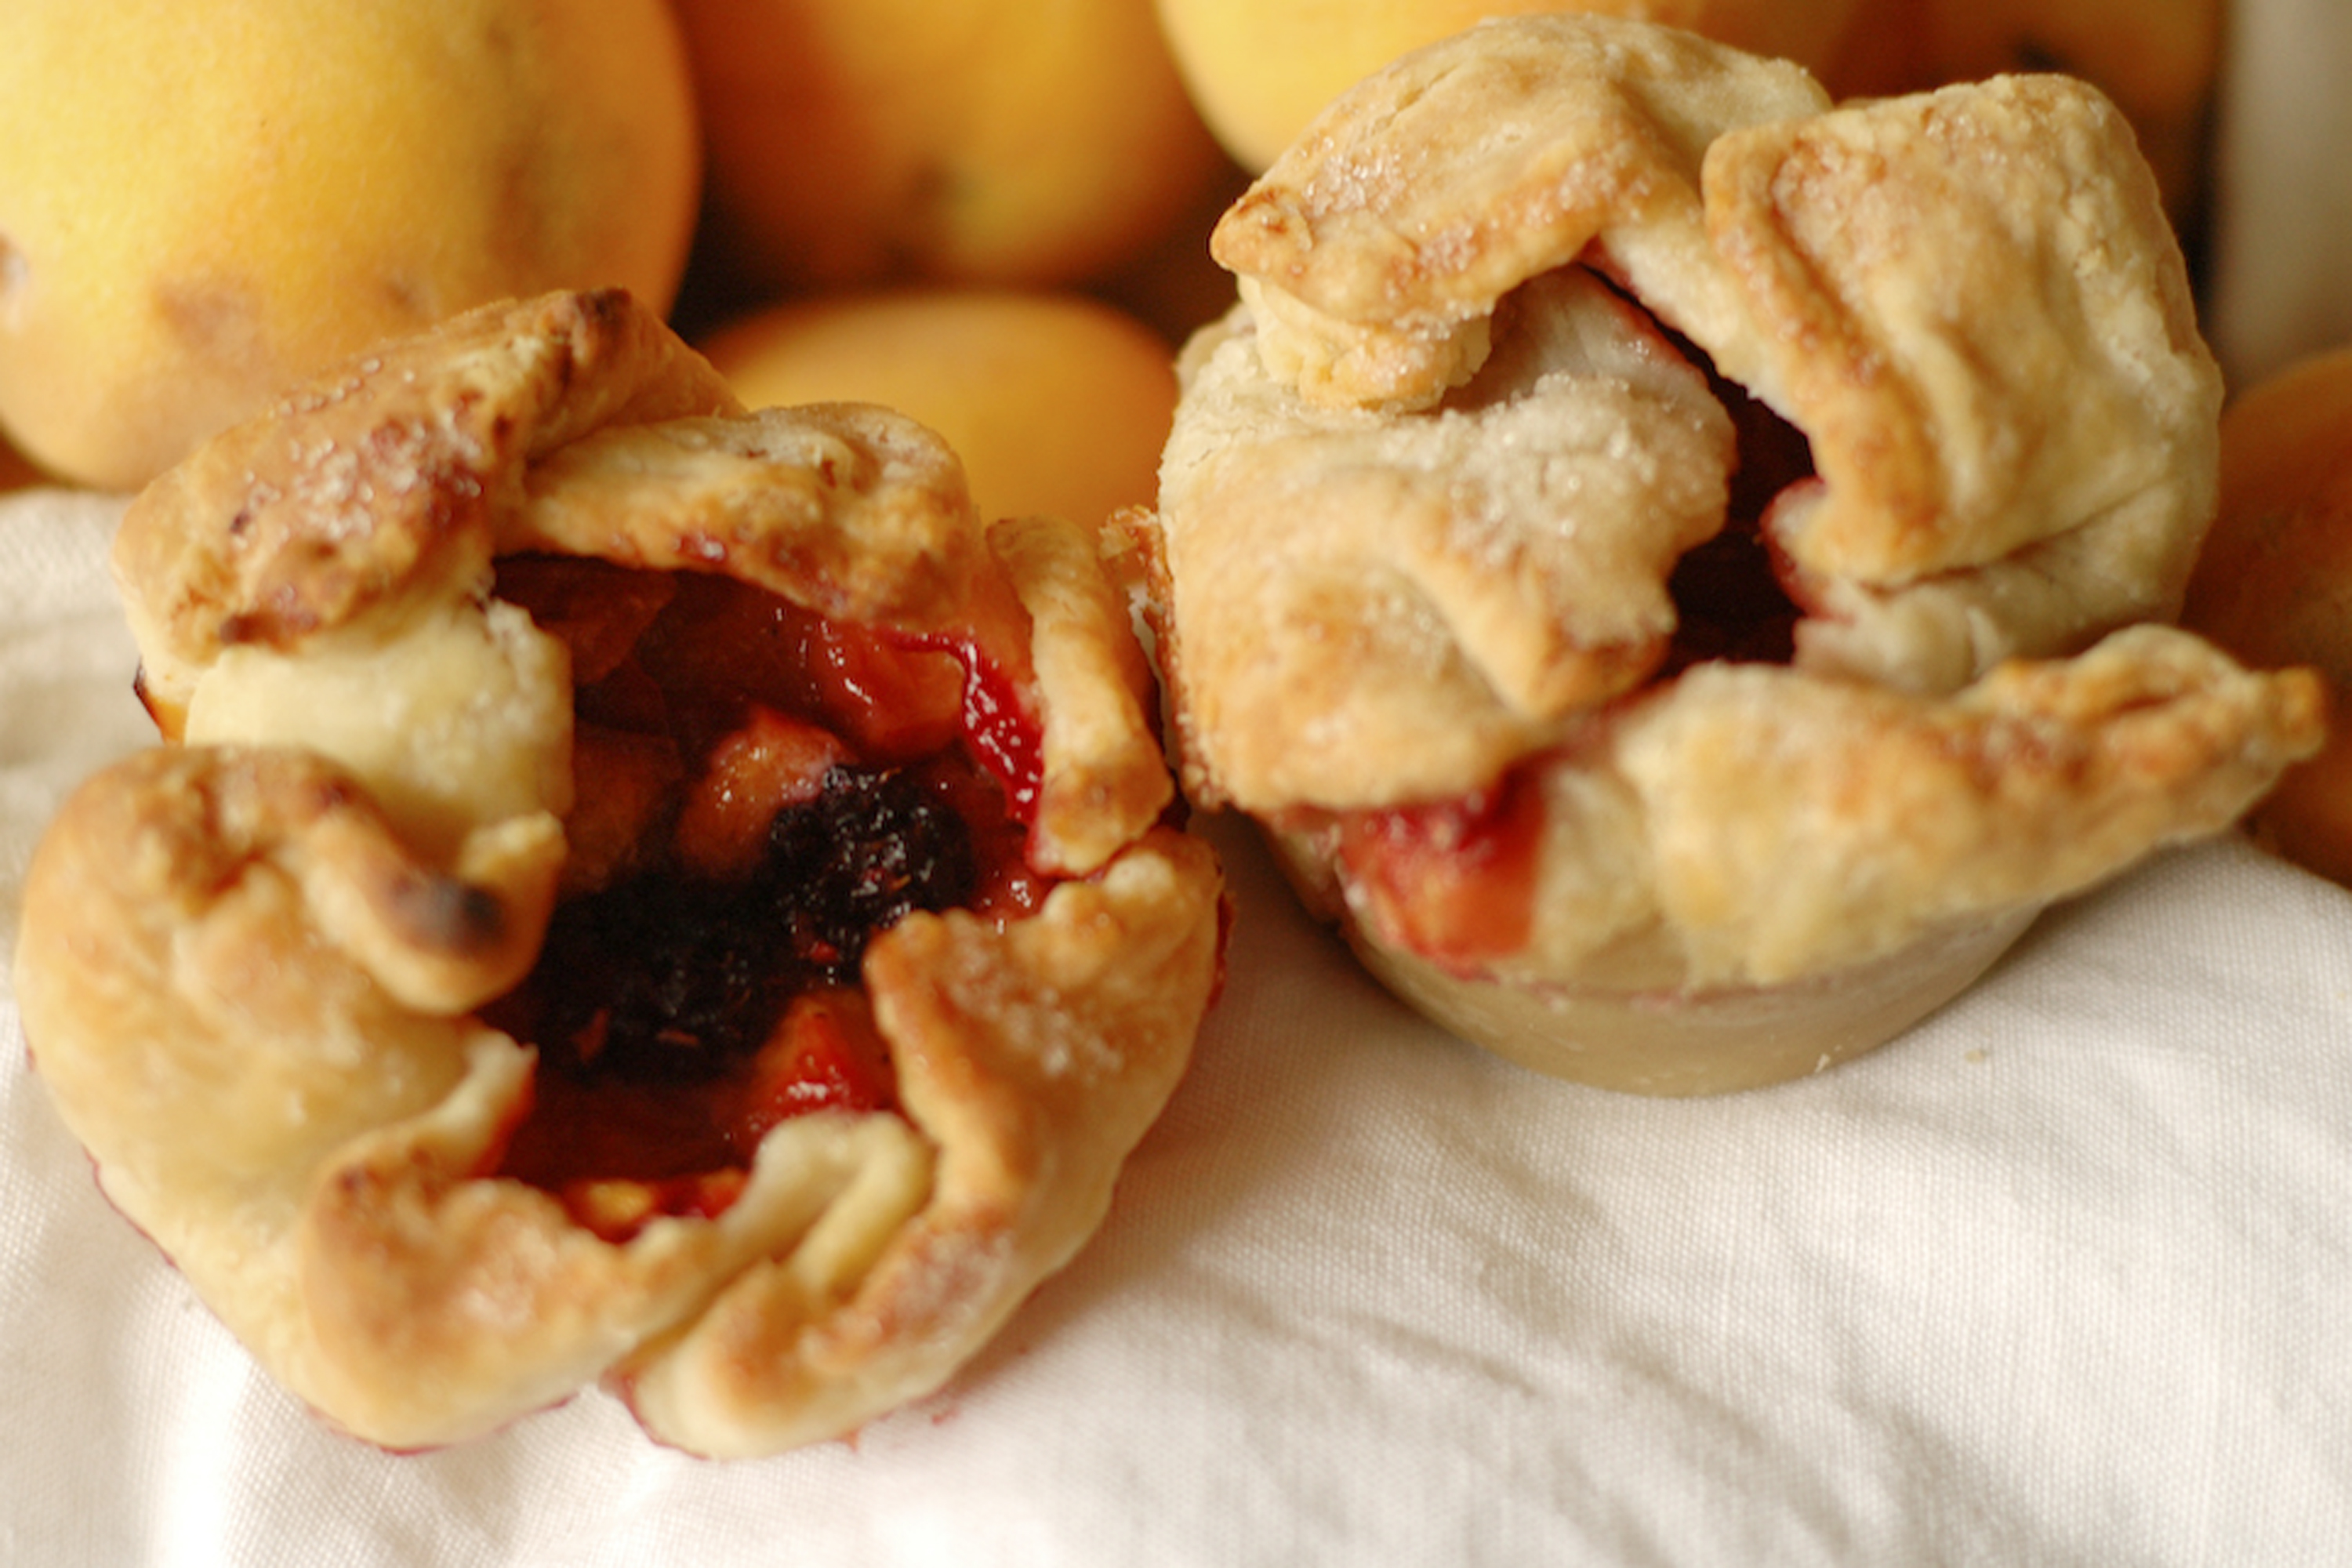 Delicious, sweet and savory mini-pies